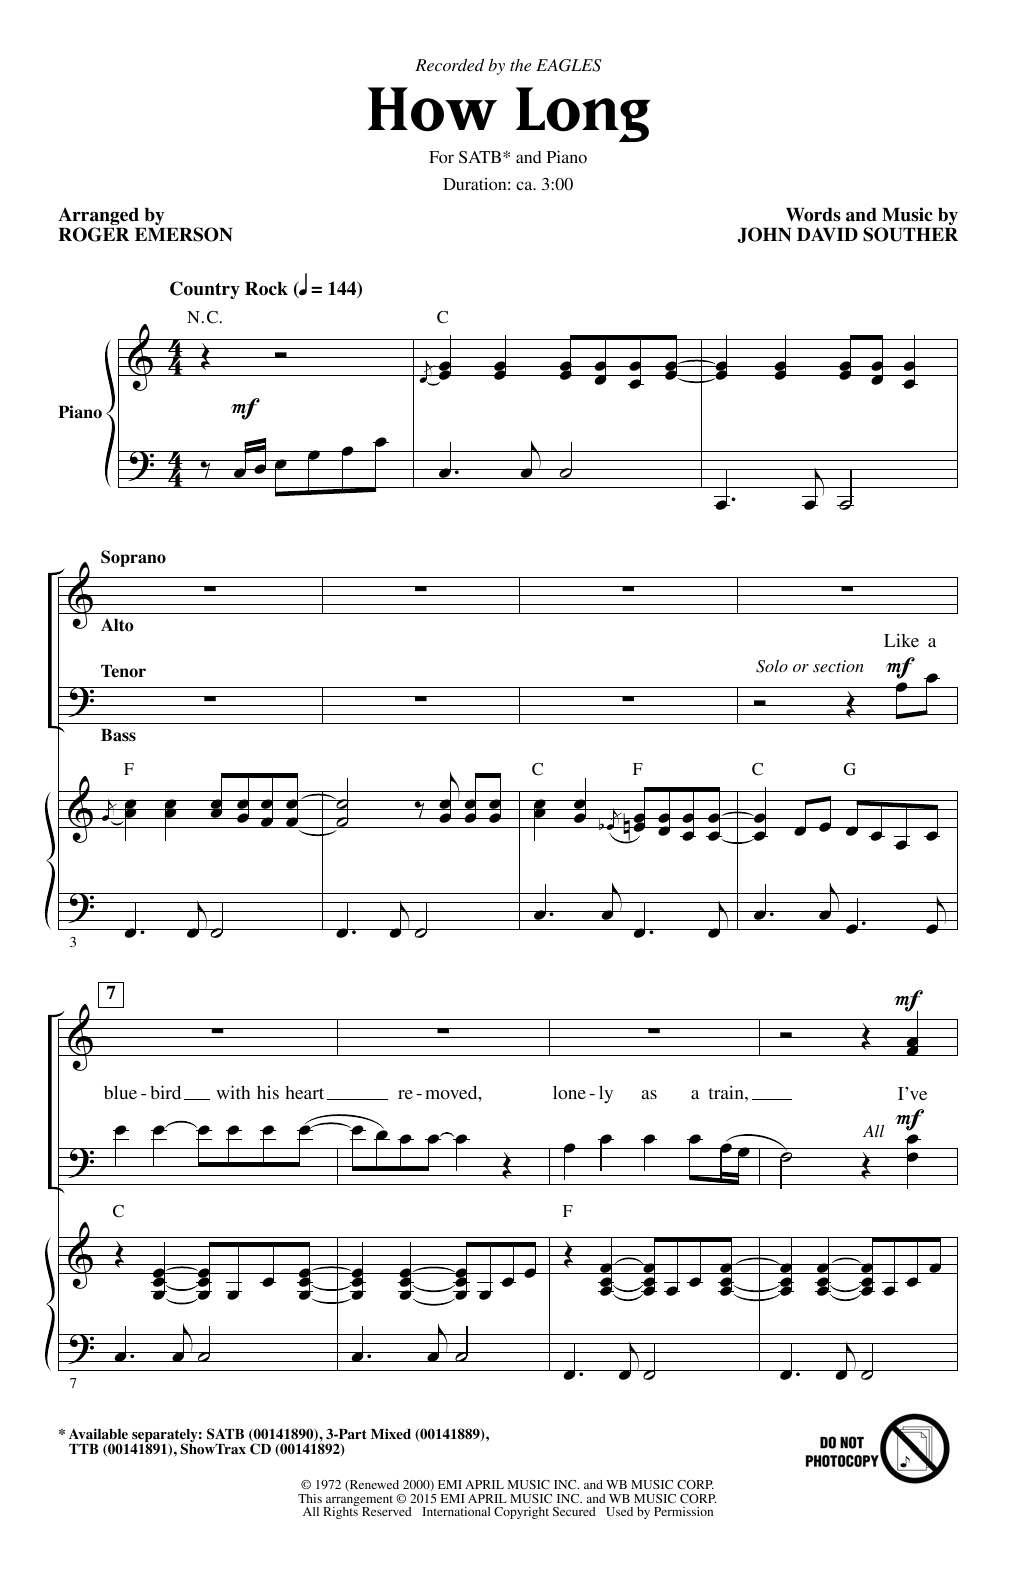 How Long (arr. Roger Emerson) Sheet Music